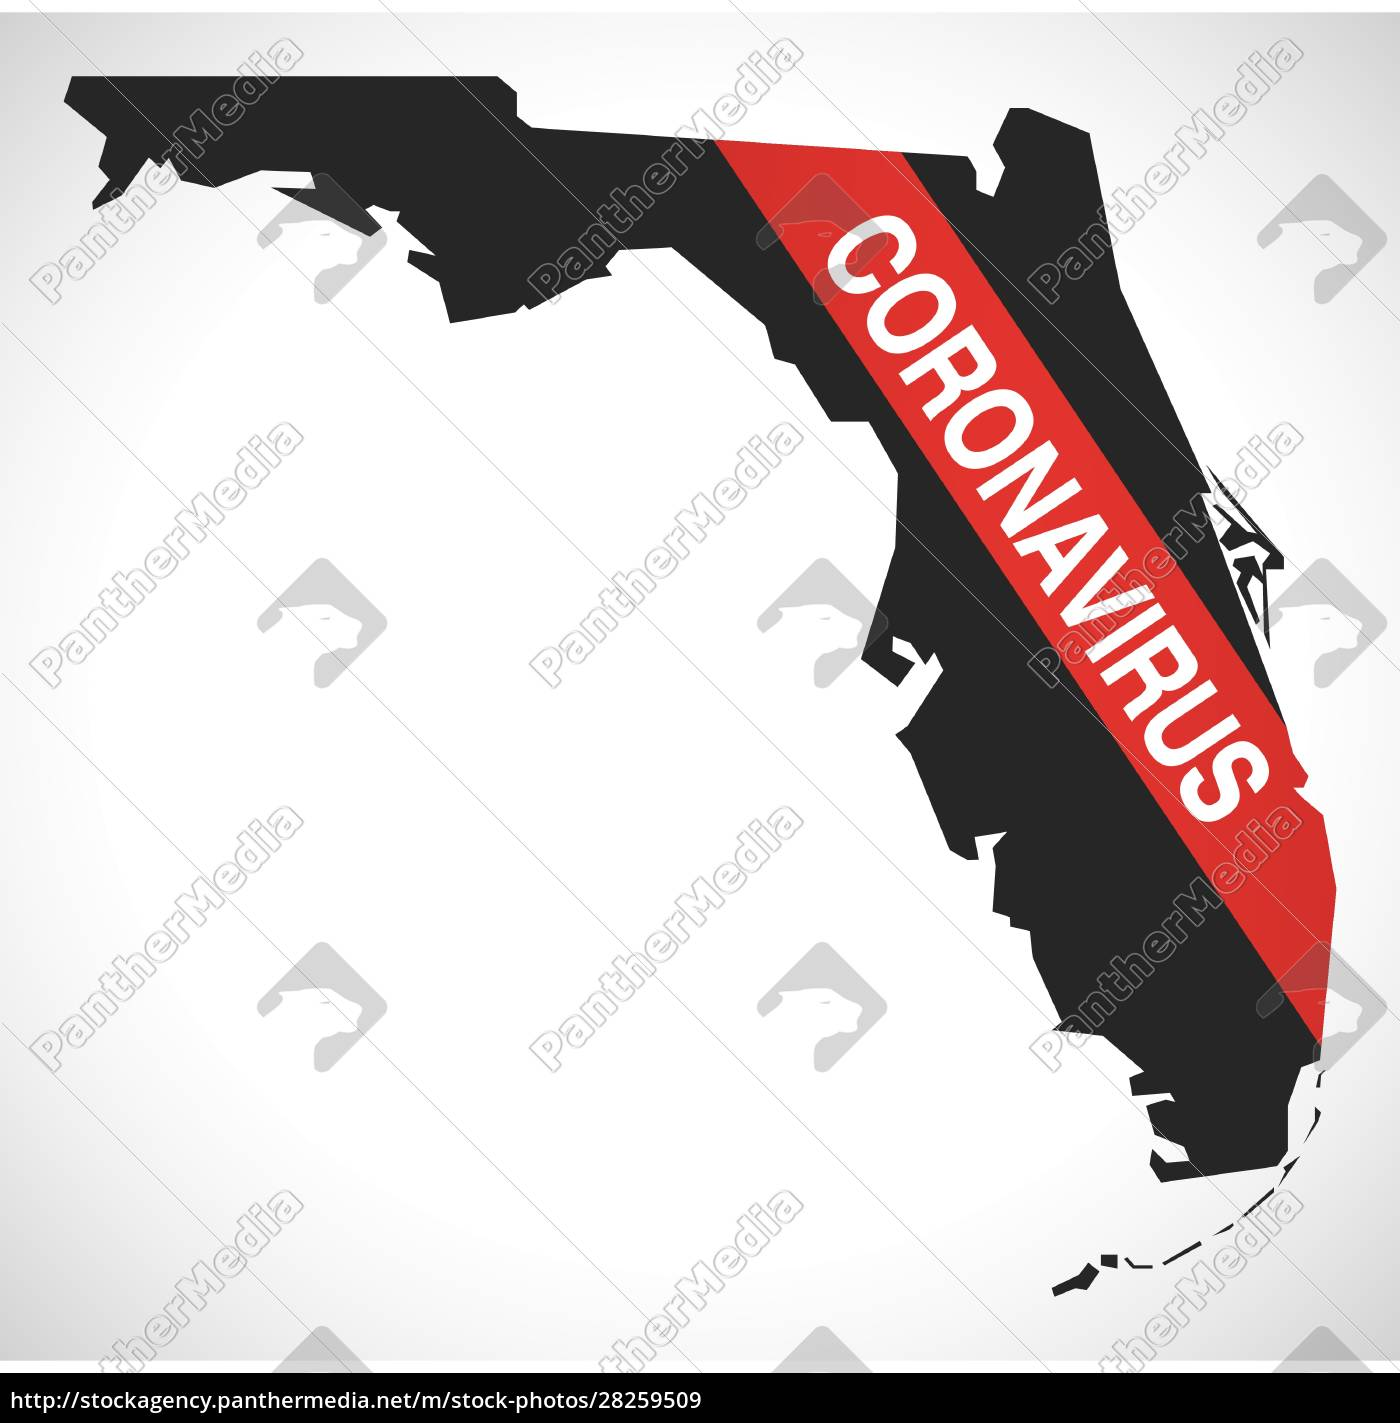 florida, usa, federal, state, map, with - 28259509